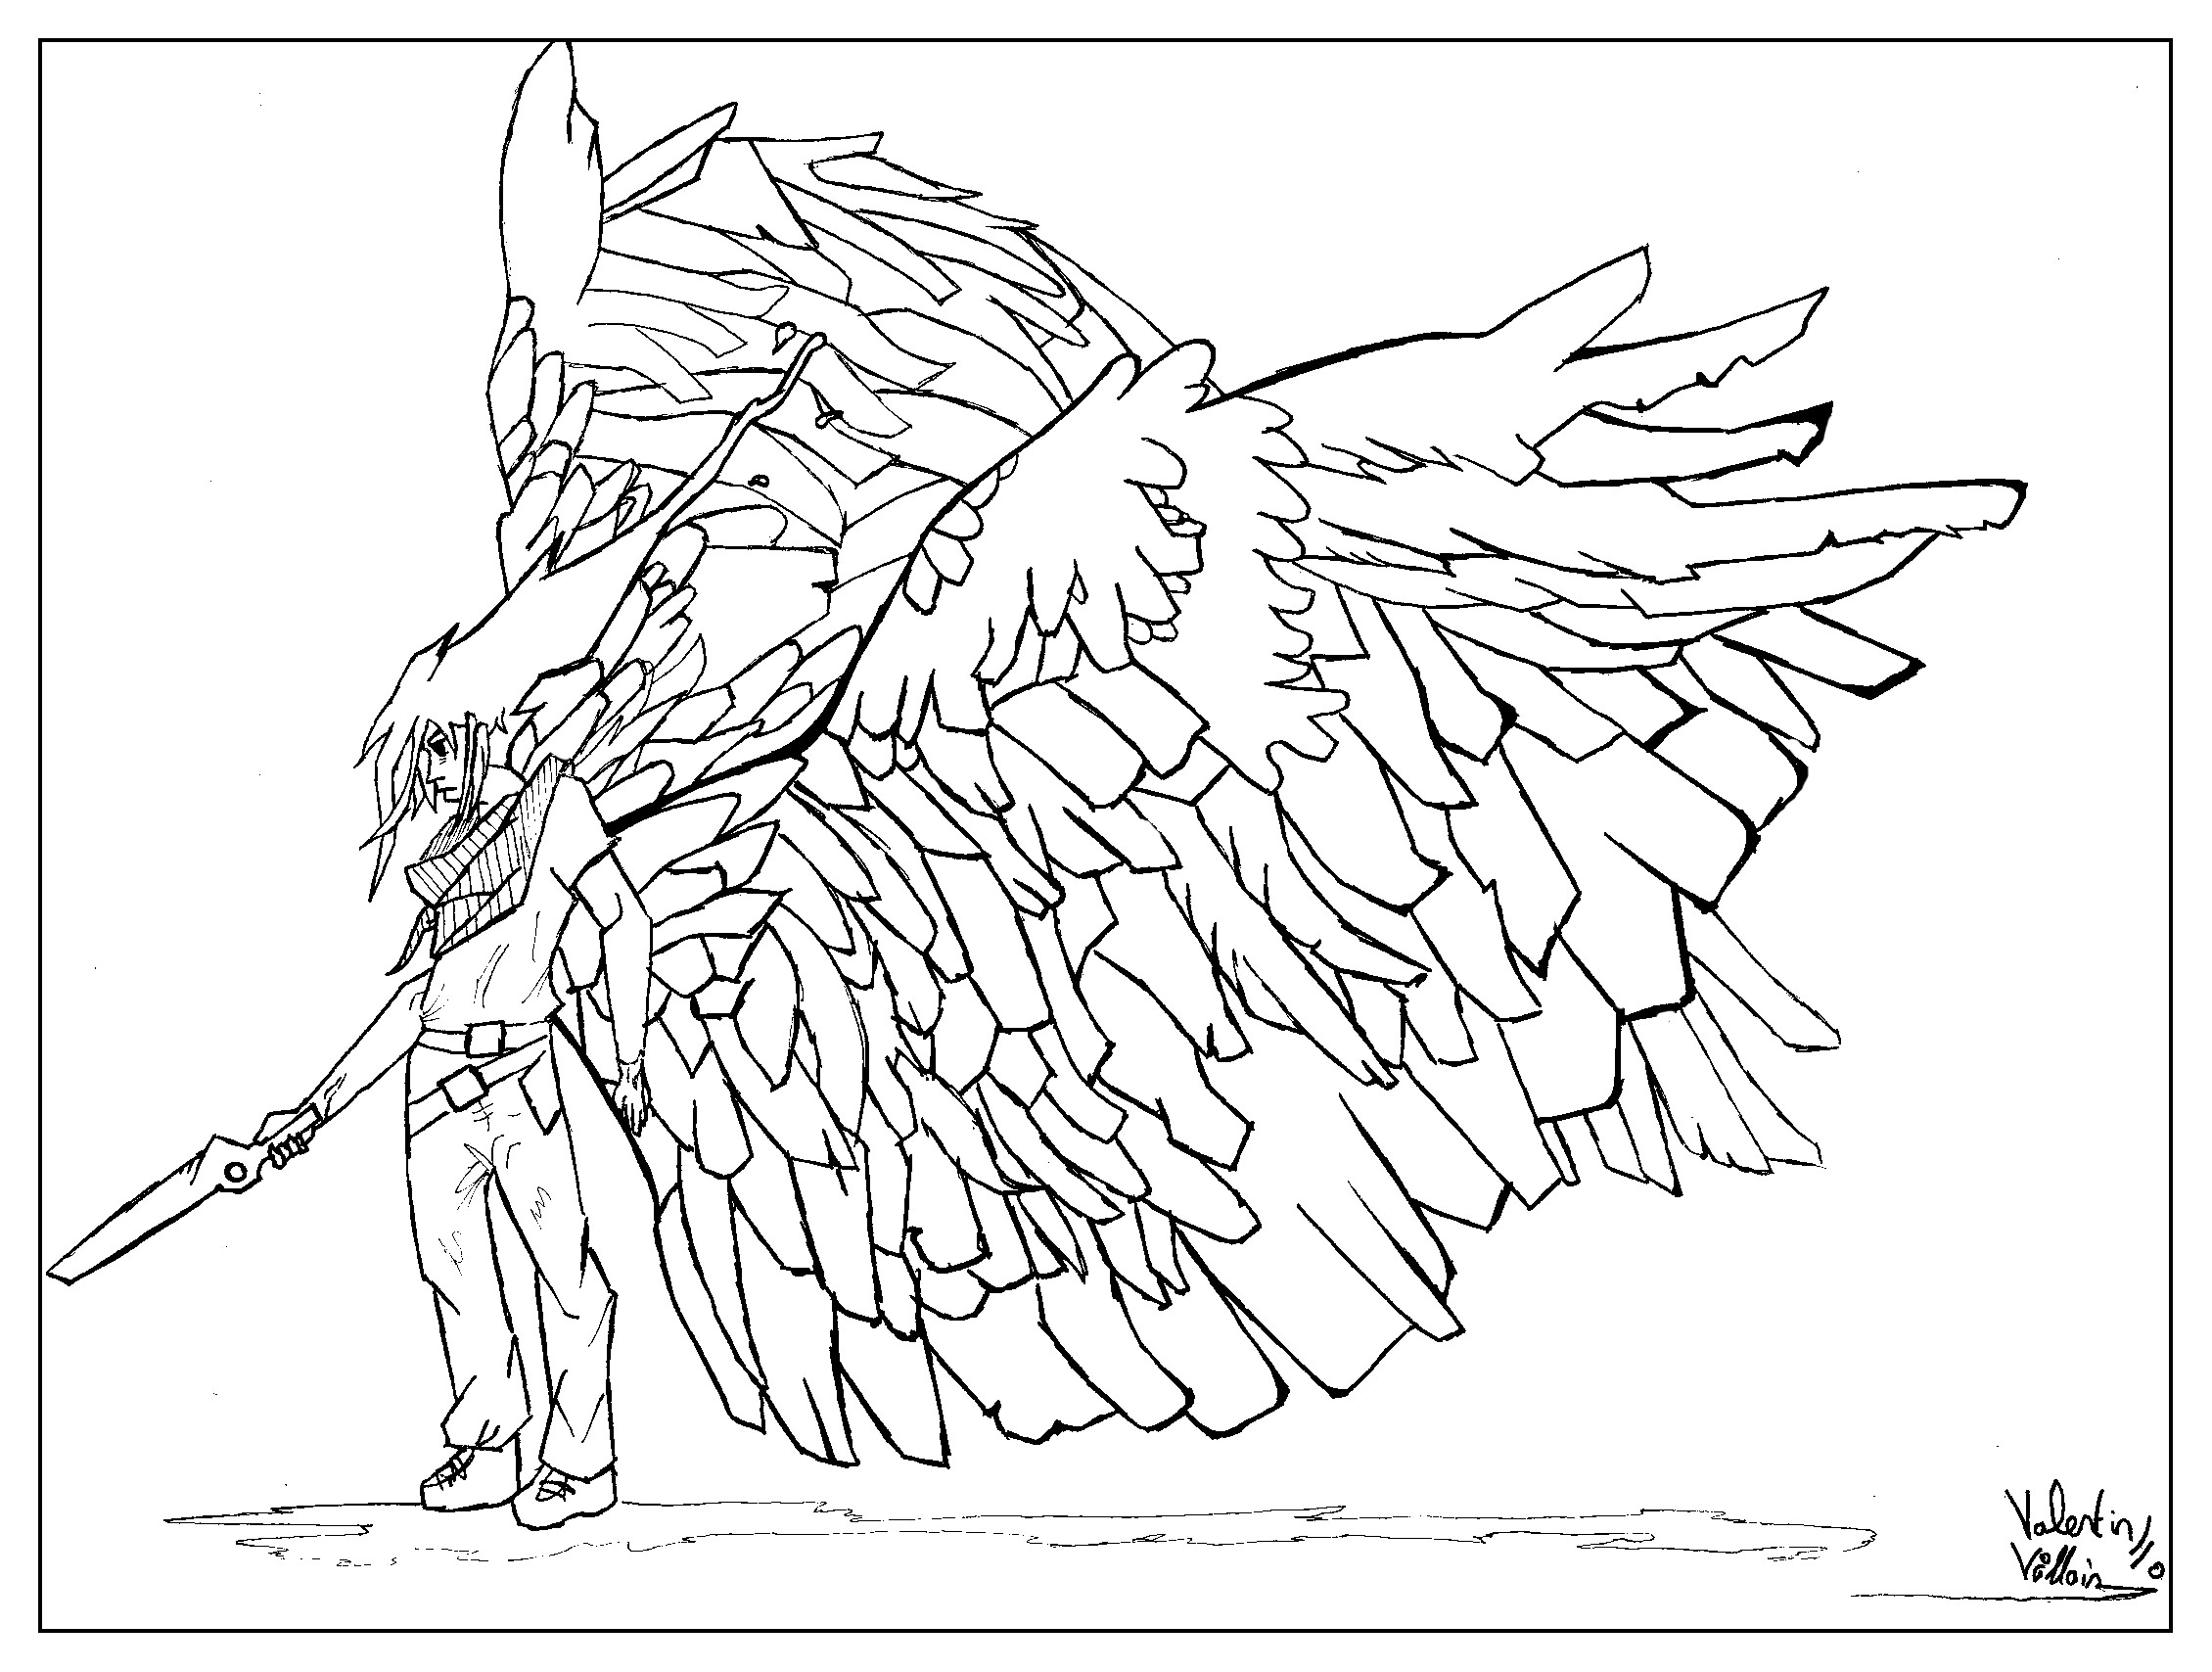 Coloring page adult draw Man wings by valentin